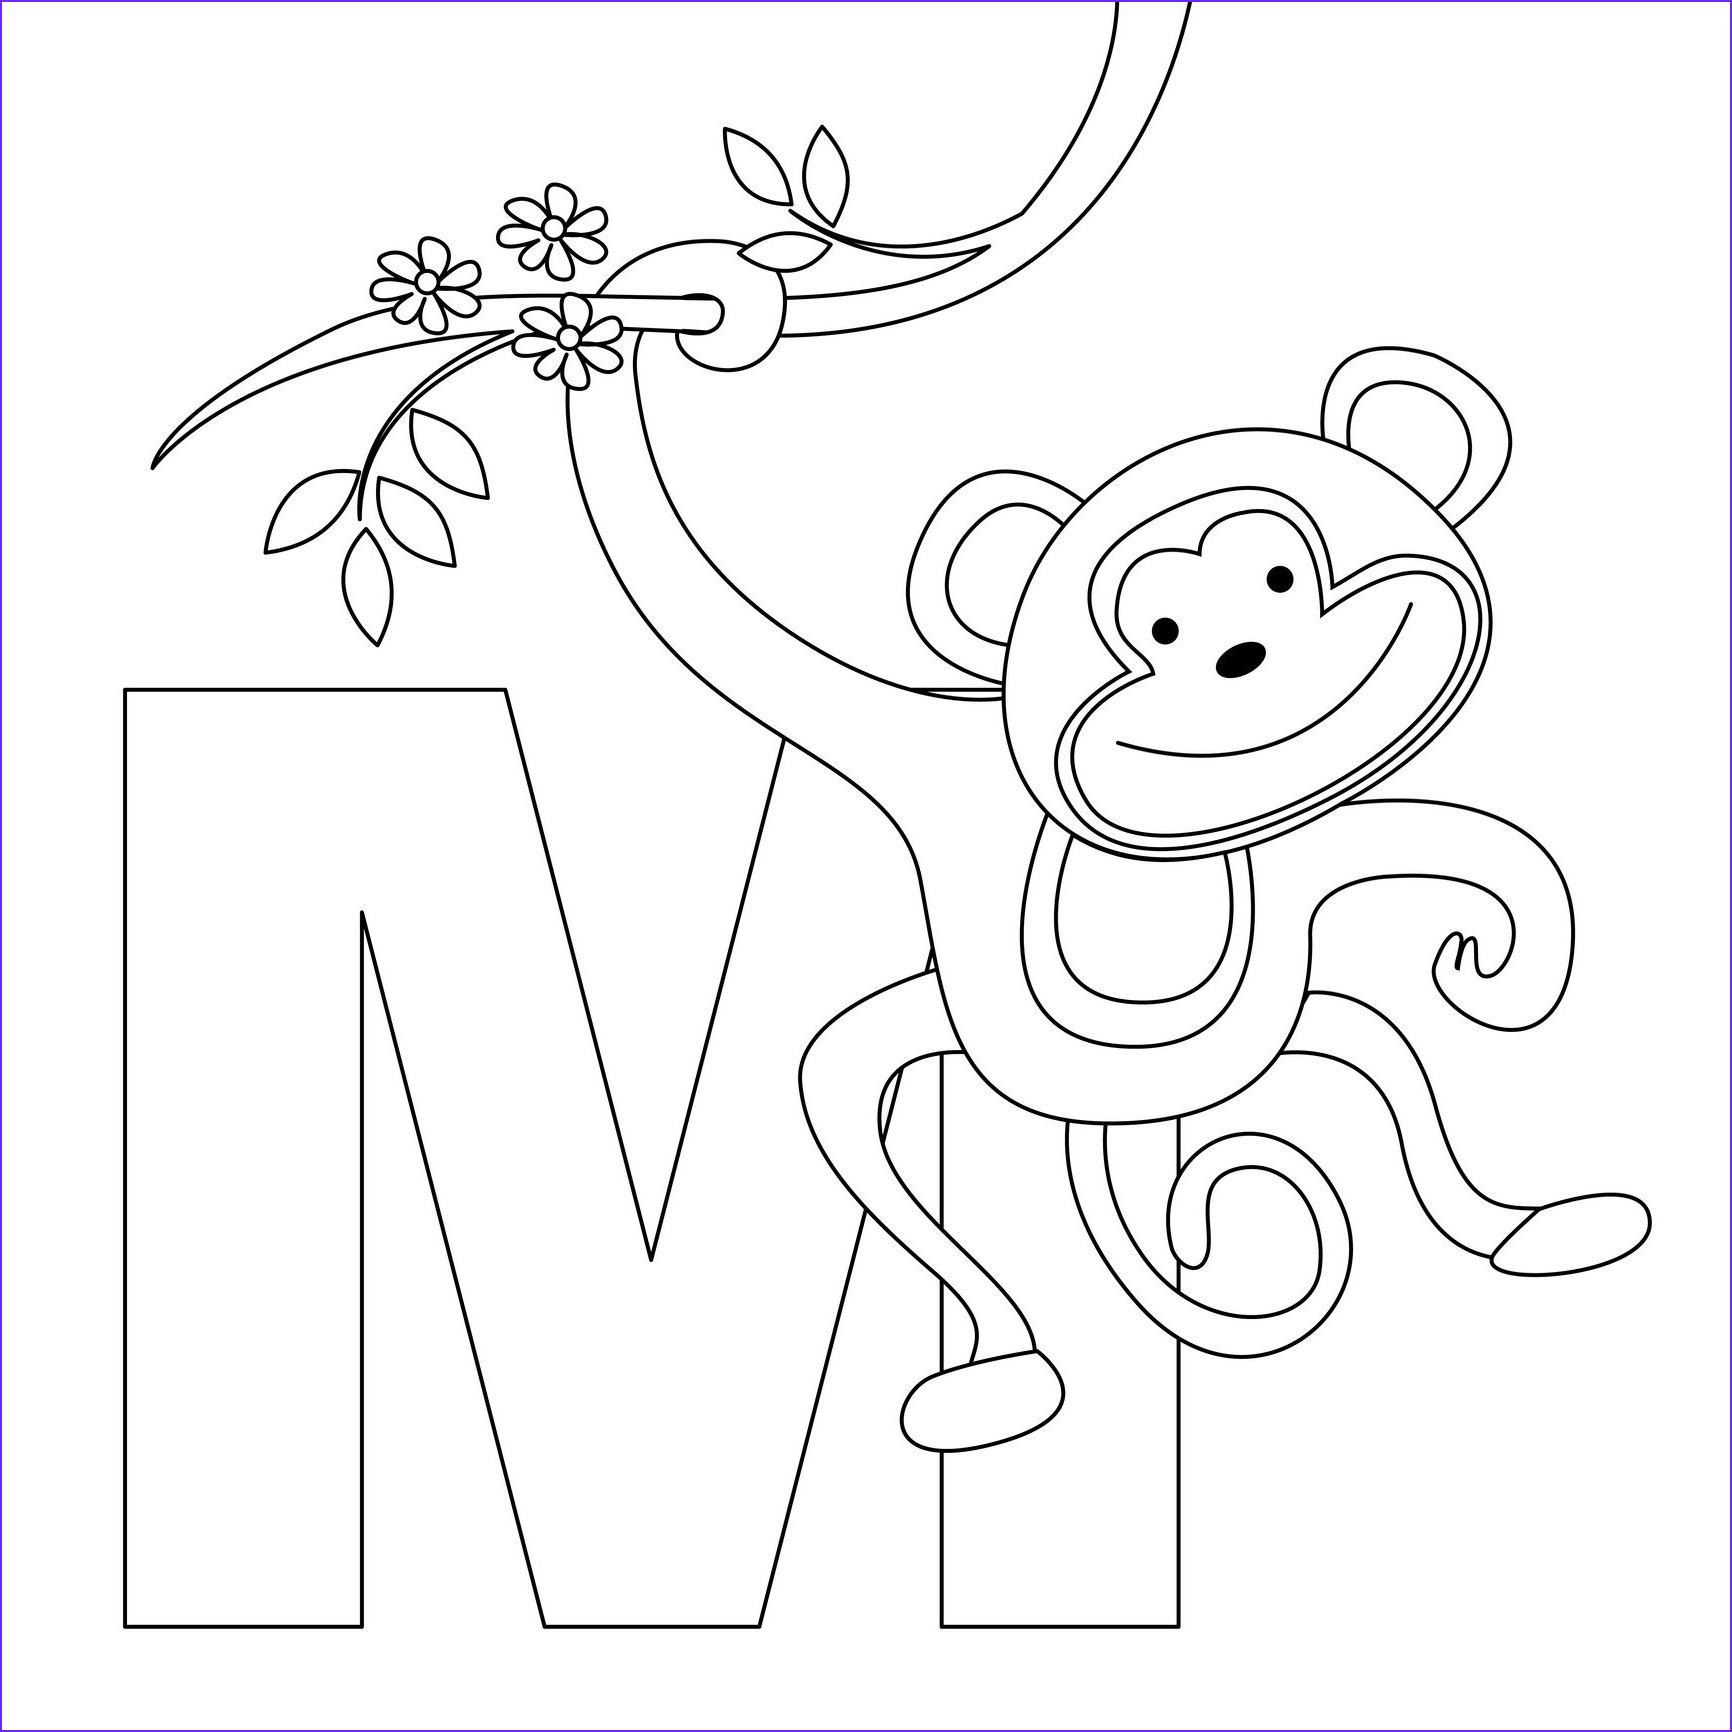 10 Cool Coloring Page For Kids Collection In